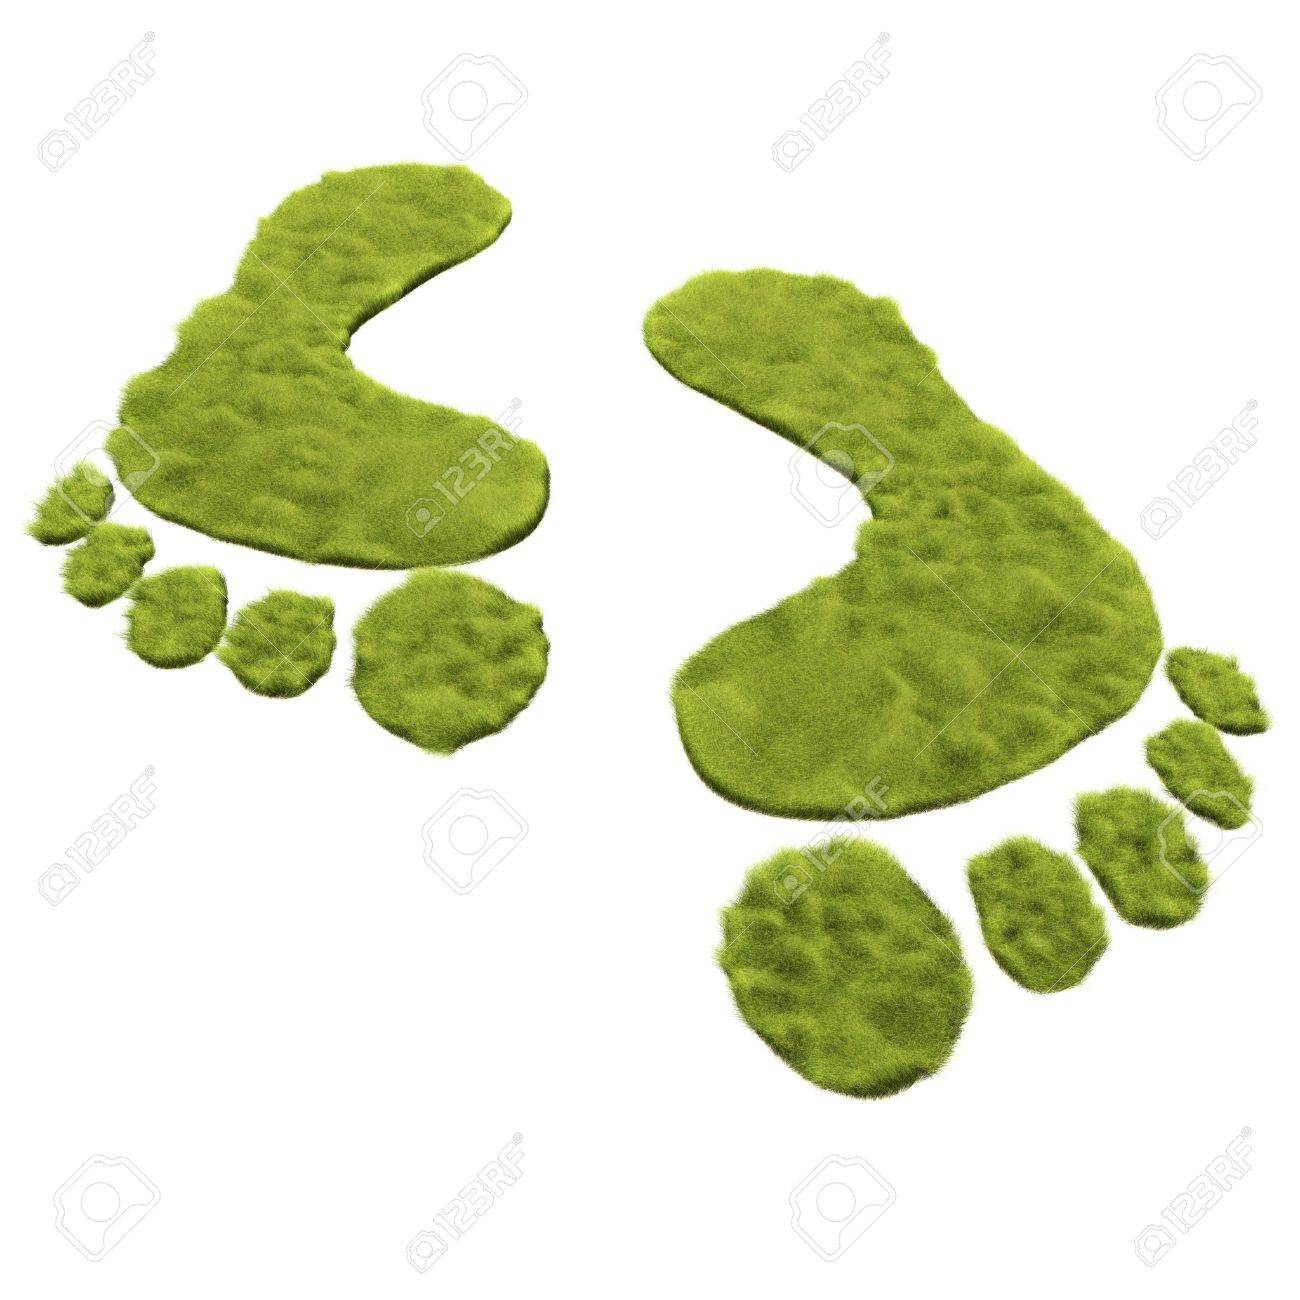 Green grass foot print is to promote the green move instead of carbon foot print Stock Photo - 6279955